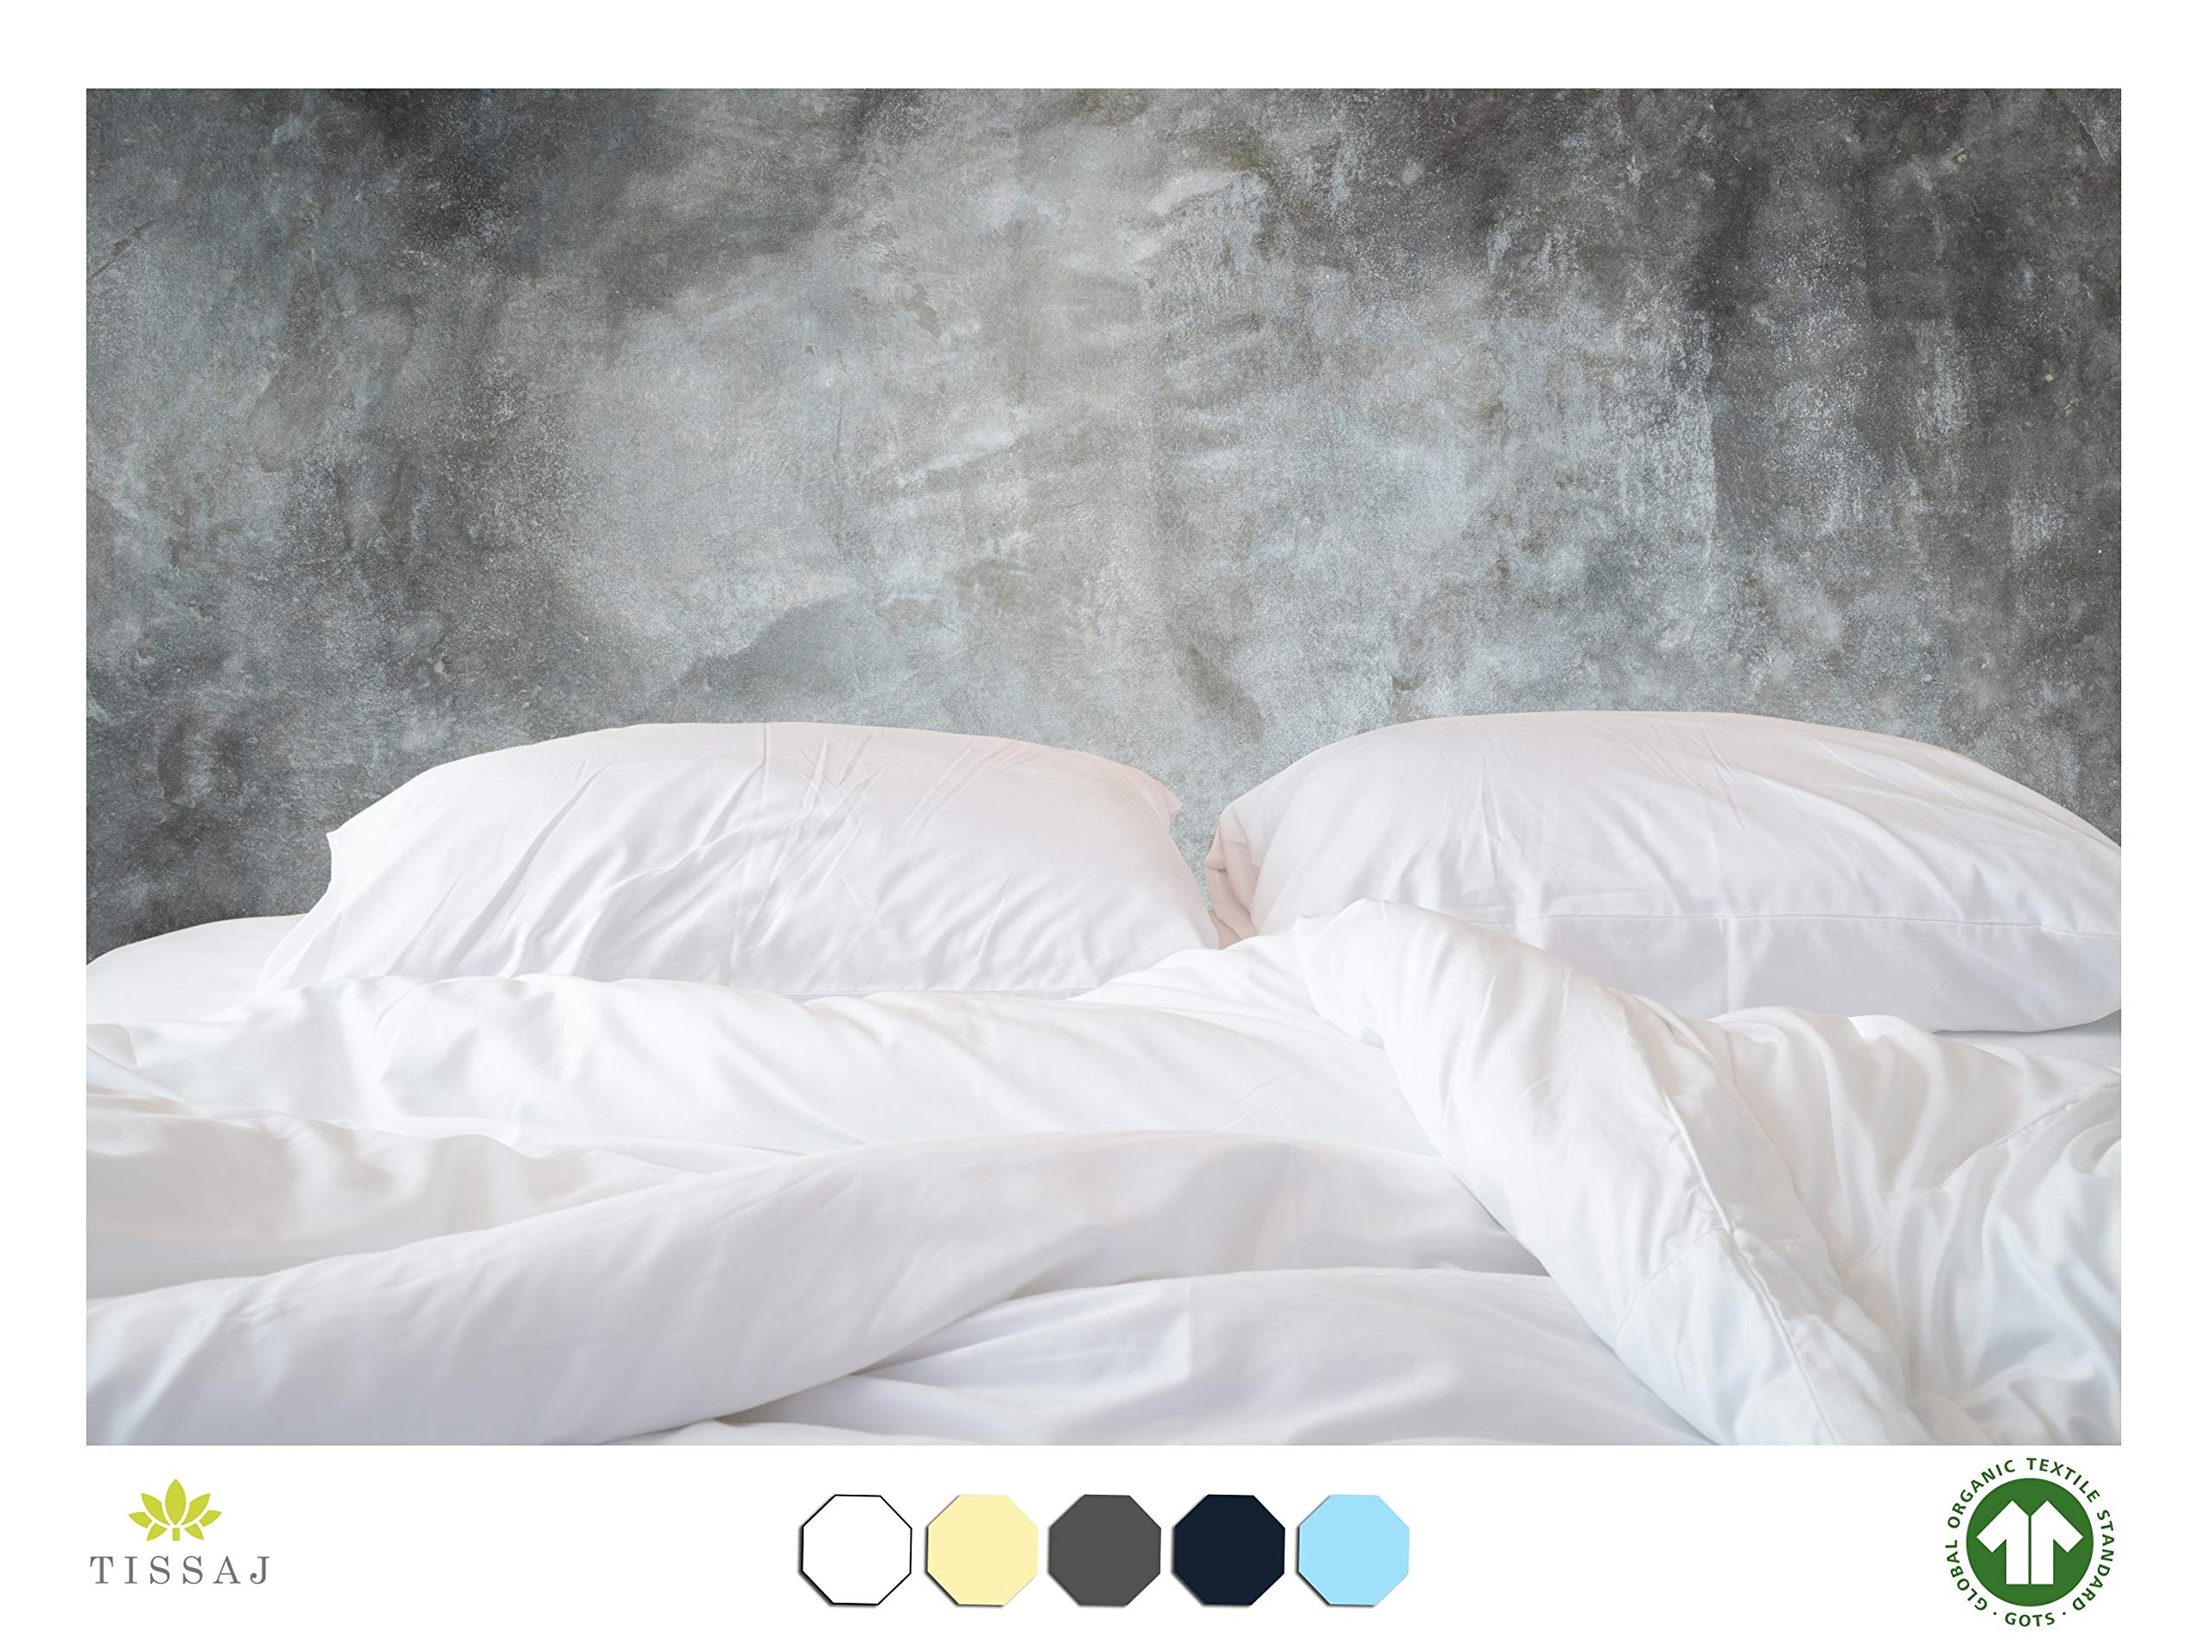 Tissaj 500-Thread-Count Organic Cotton Duvet Cover - 500TC Queen & Full Size Ultra White Color - for Bedding - 100% GOTS Certified Extra Long Staple, Soft Sateen Weave Finish - Luxury Collection by Tissaj